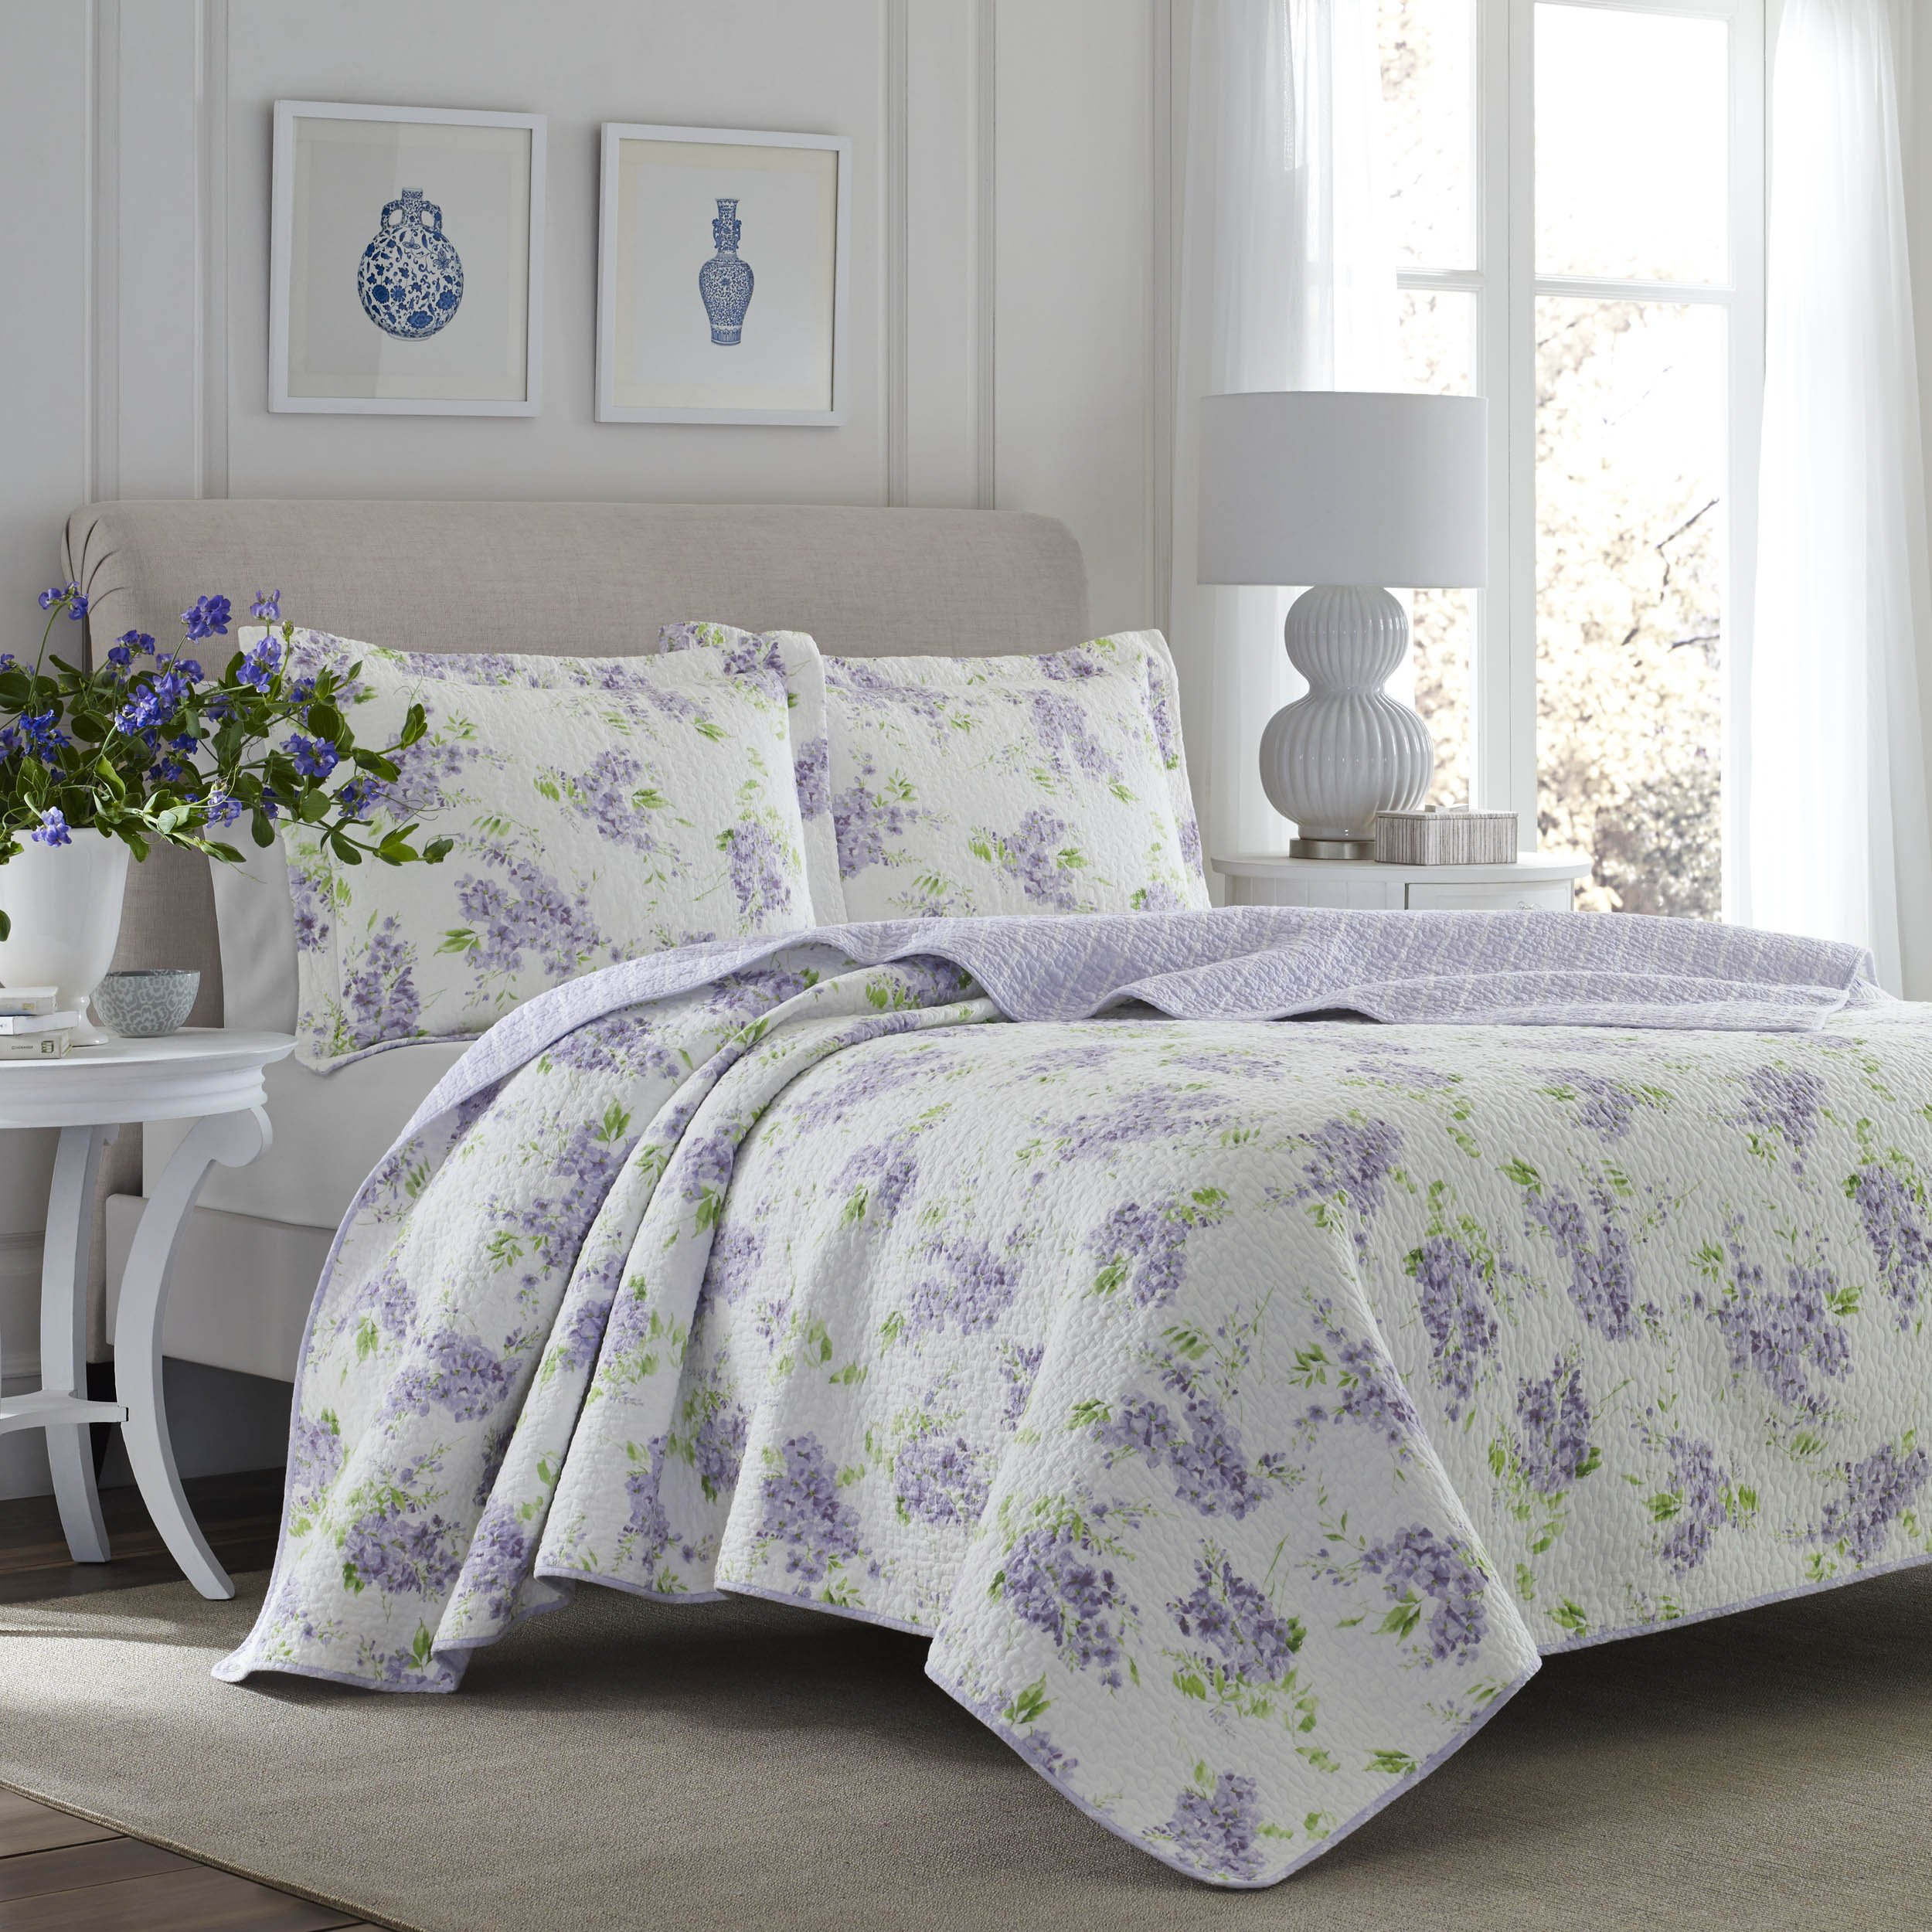 printed duvet set and quilt stripes contemprory green all bedding purple contemporary multi floral cover sweetgalas